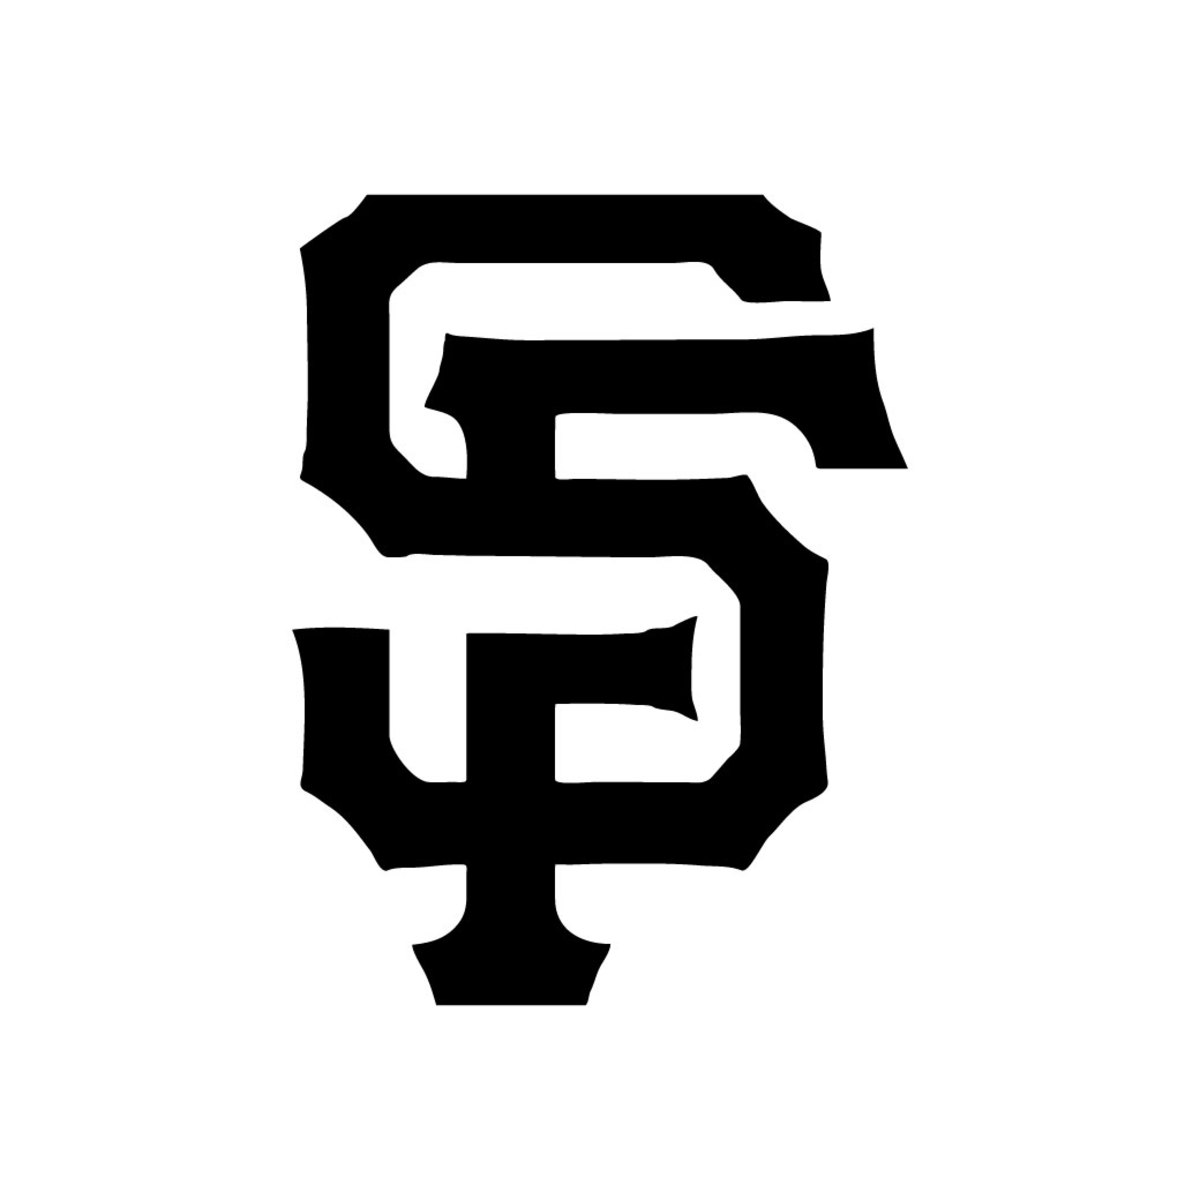 Here is a pumpkin template to carve the logo for San Francisco's baseball team, the Giants.